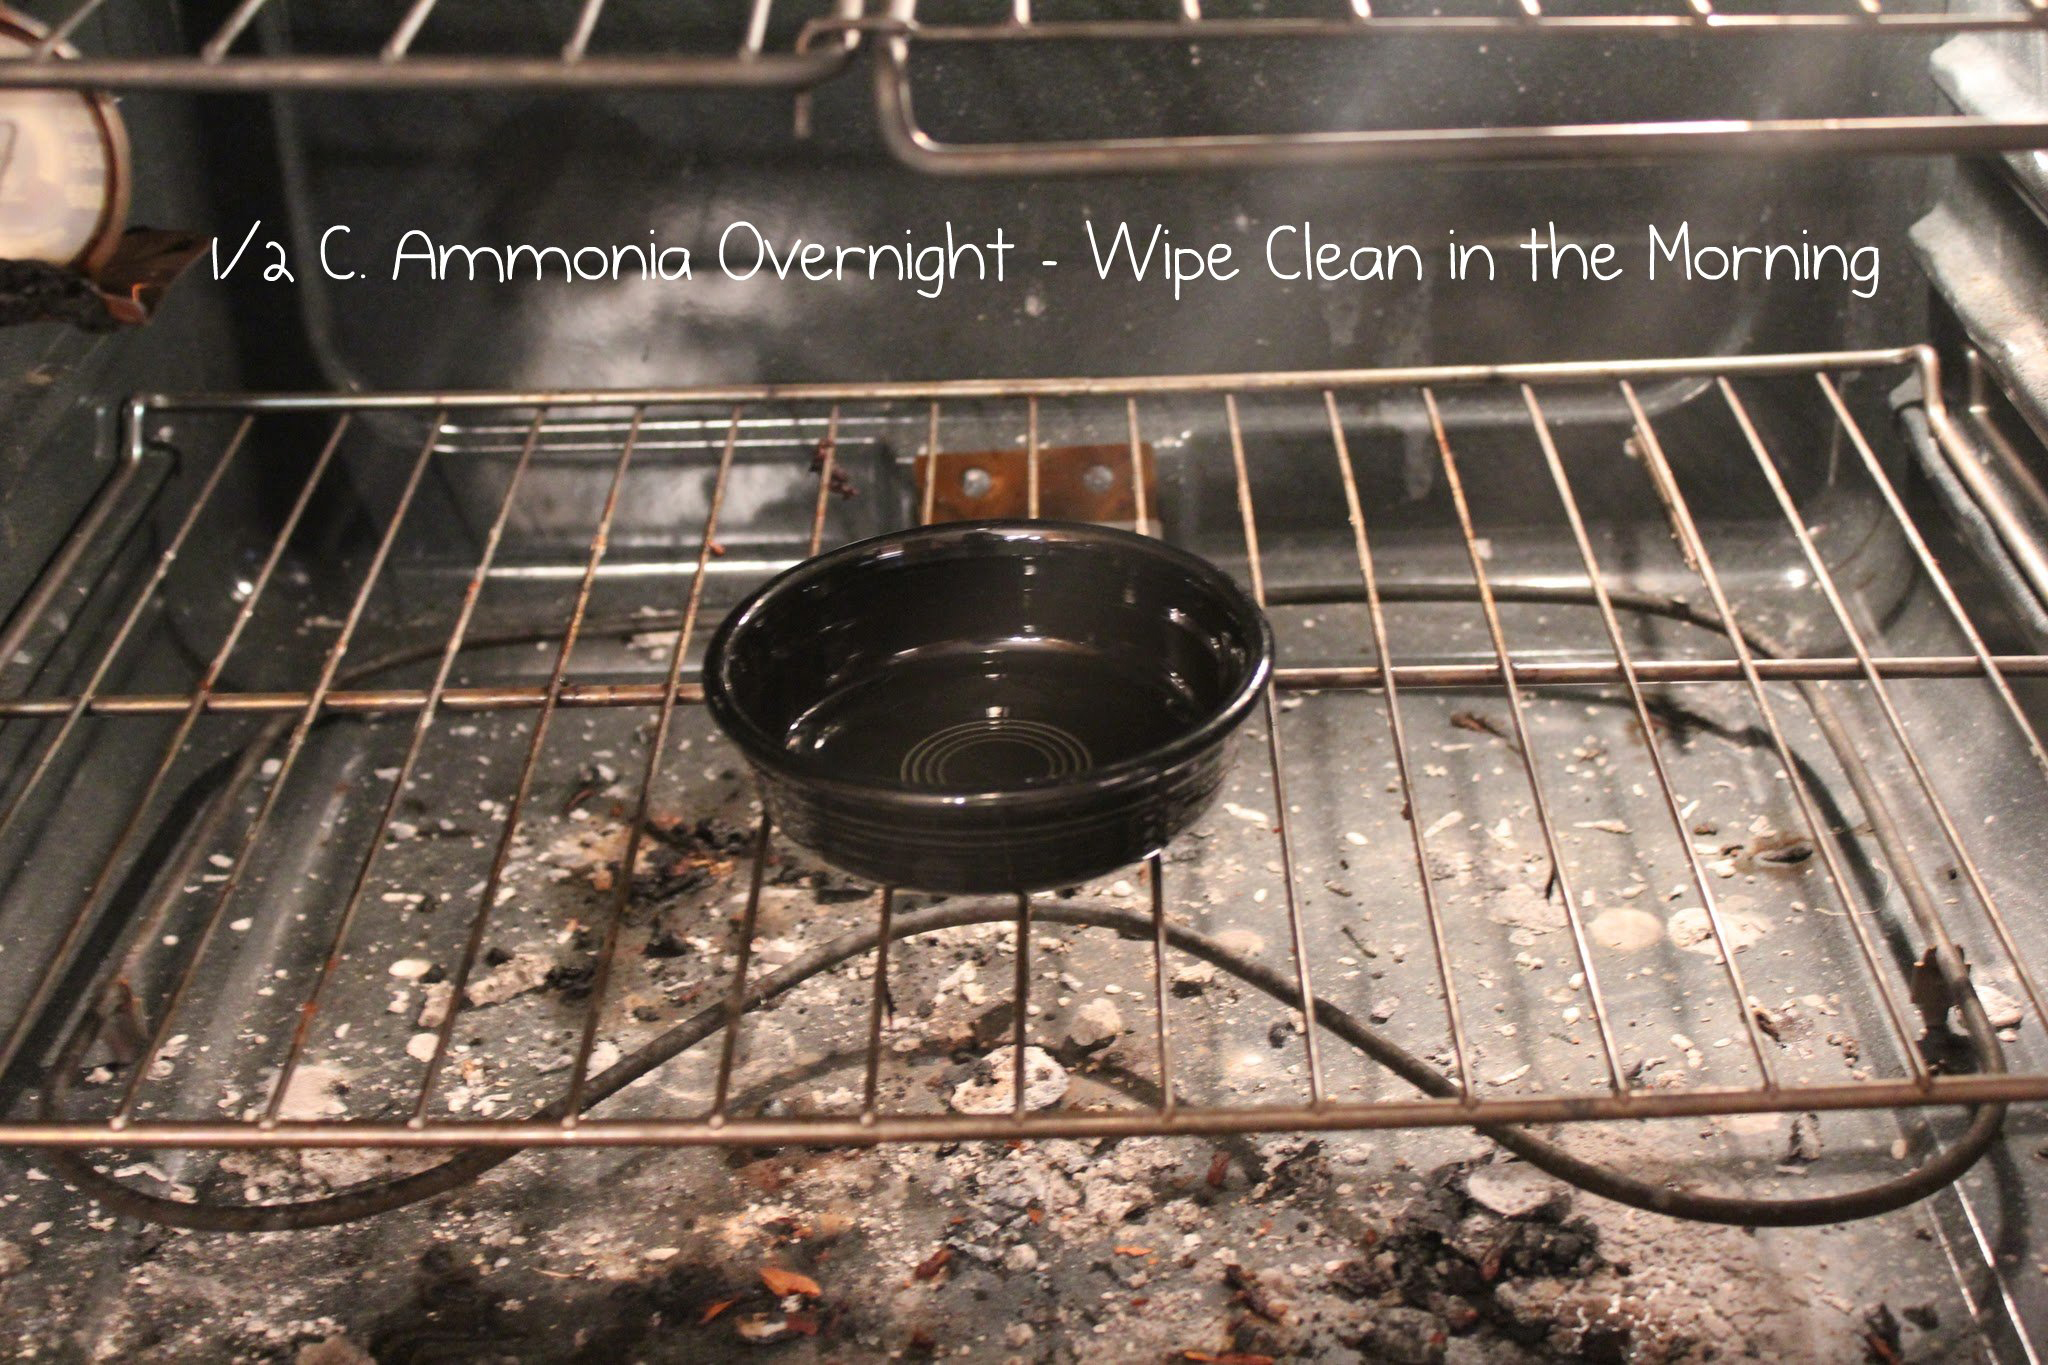 Cleaning shortcuts five time saving tips for the kitchen mommysavers - Clean oven tray less minute ...